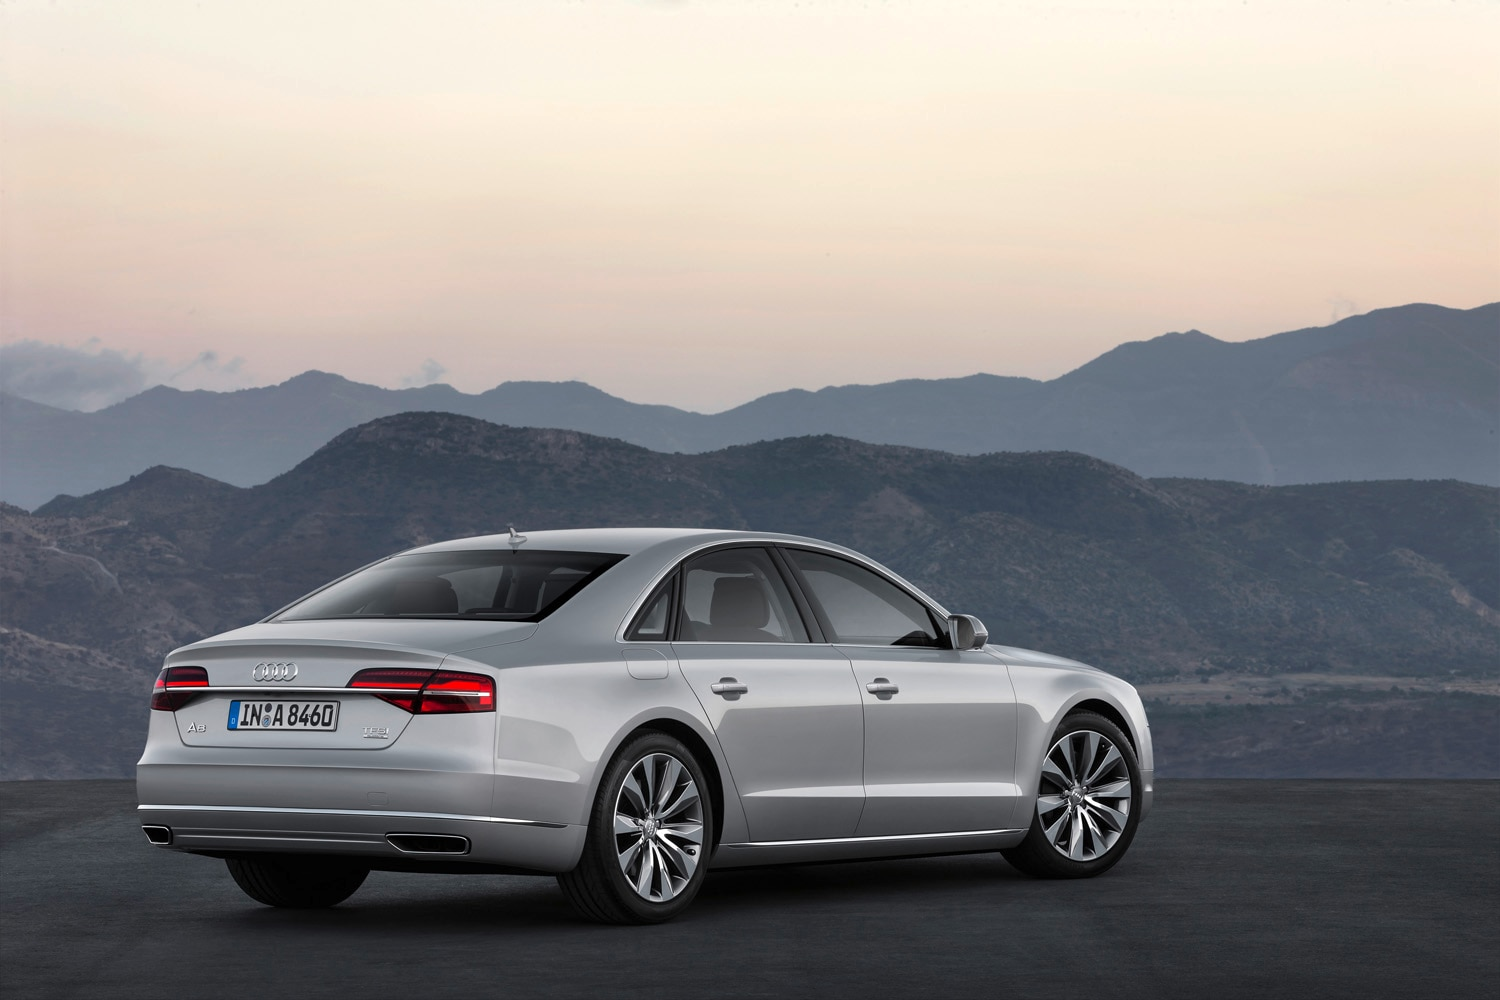 Audi audi a8 price 2015 car and auto pictures all types all models 2015 audi a8 to start at 78295 automobile publicscrutiny Gallery